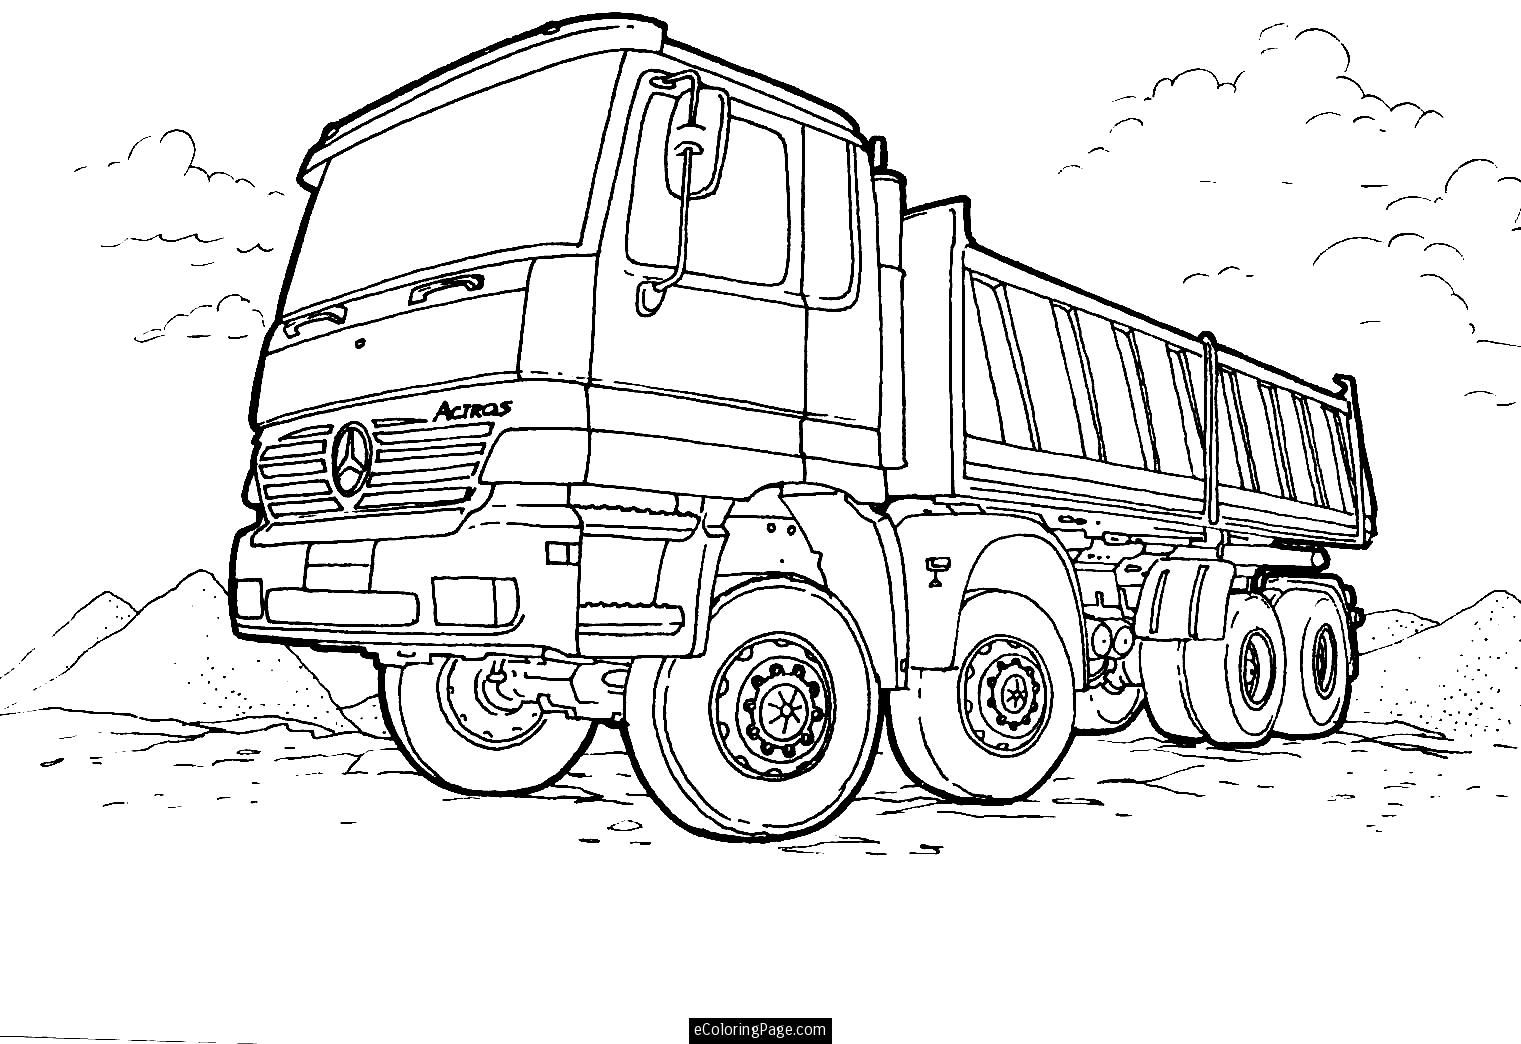 Ecoloringpage Com Printable Coloring Pages Funny Pictures Monster Truck Coloring Pages Truck Coloring Pages Cars Coloring Pages